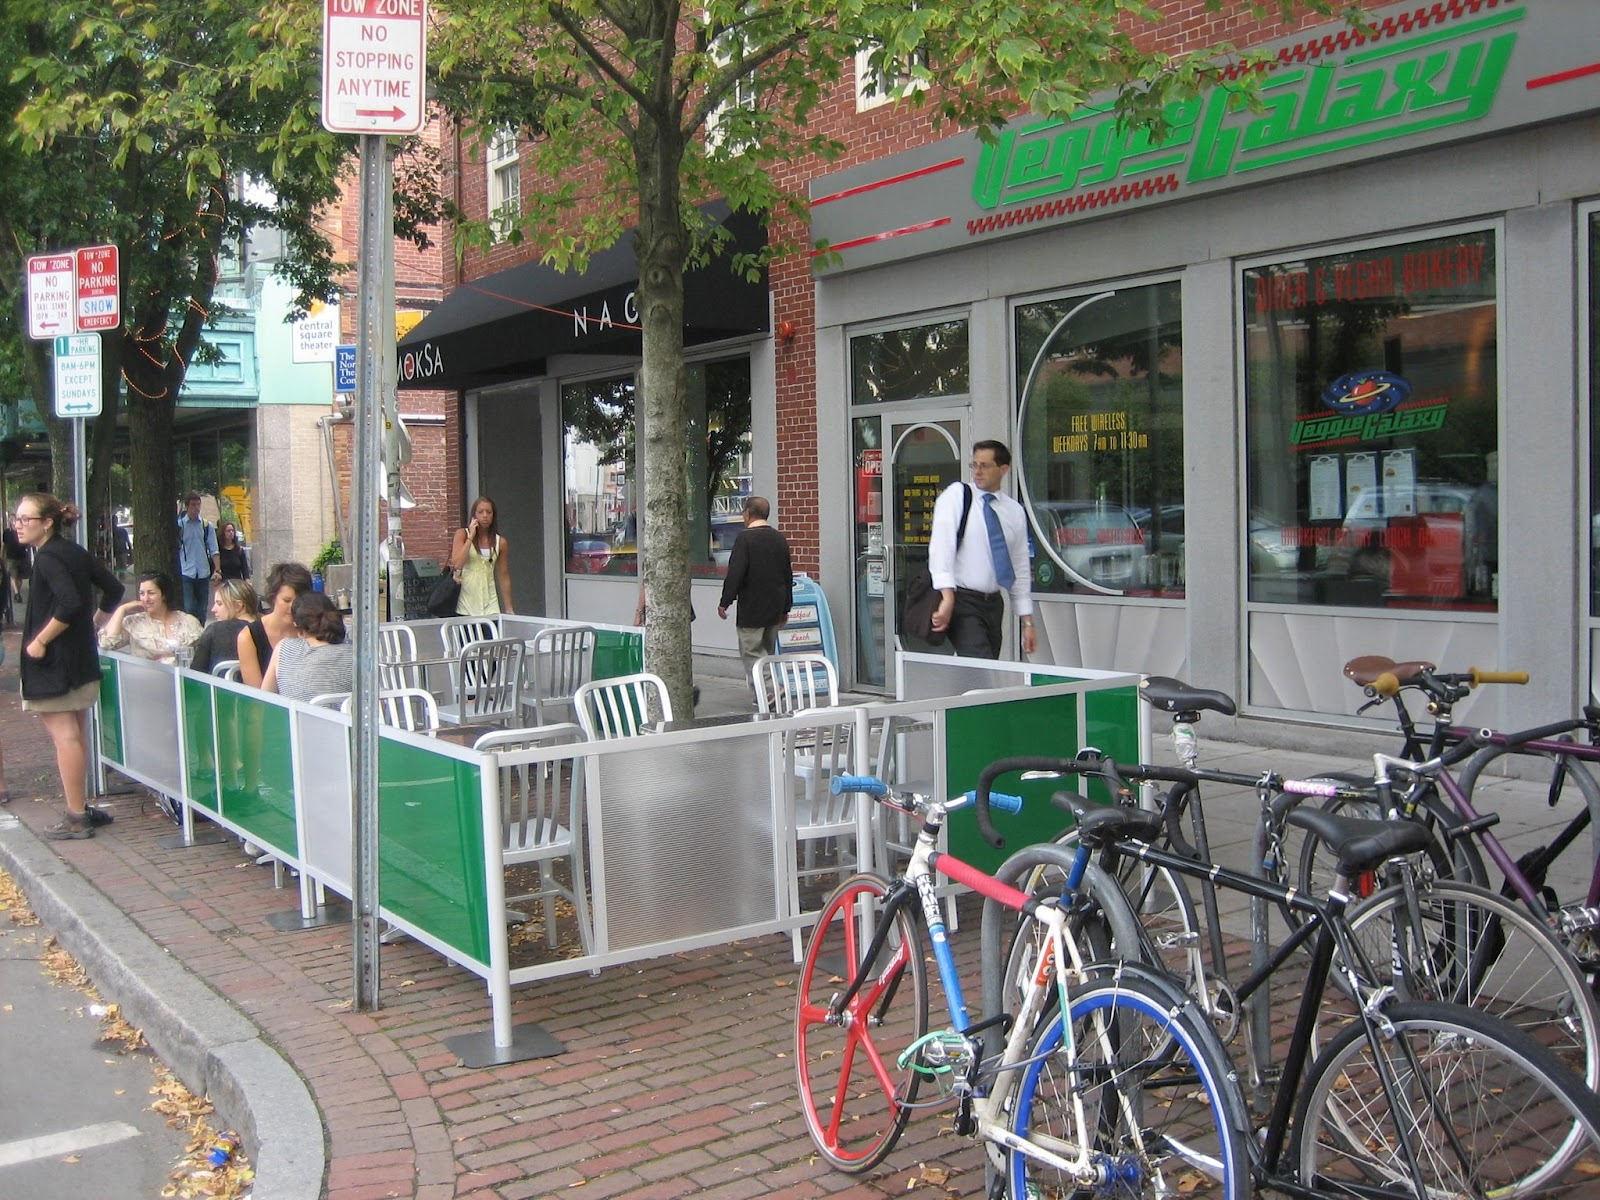 Cafe Barriers, Restaurant Barriers, Sidewalk Cafe Barriers, Cafe Fencing